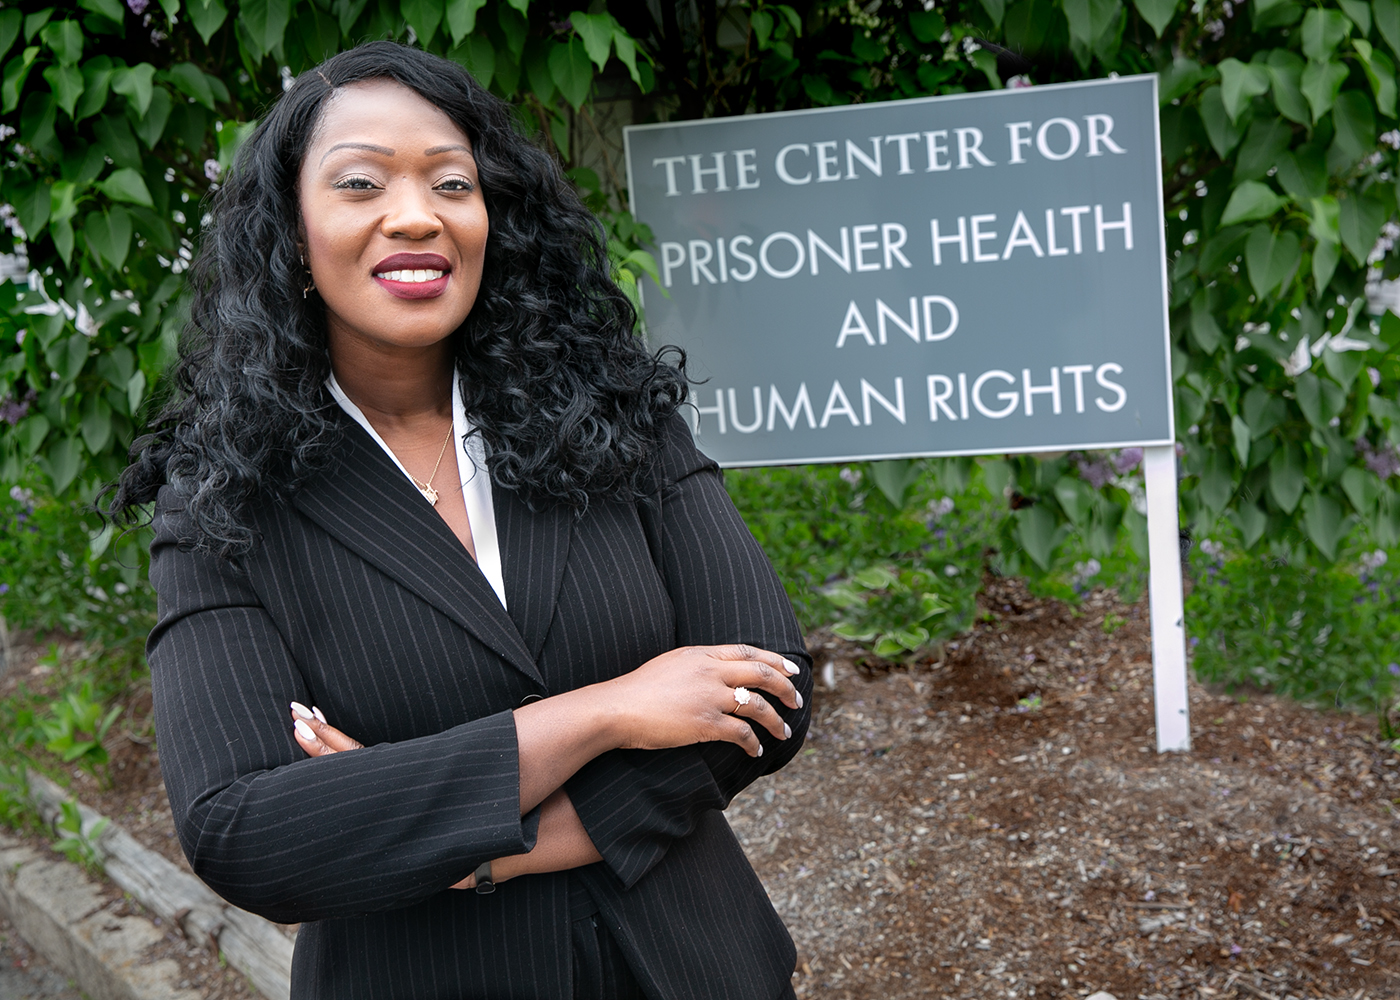 Center for Prisoner Health and Human Rights names new director